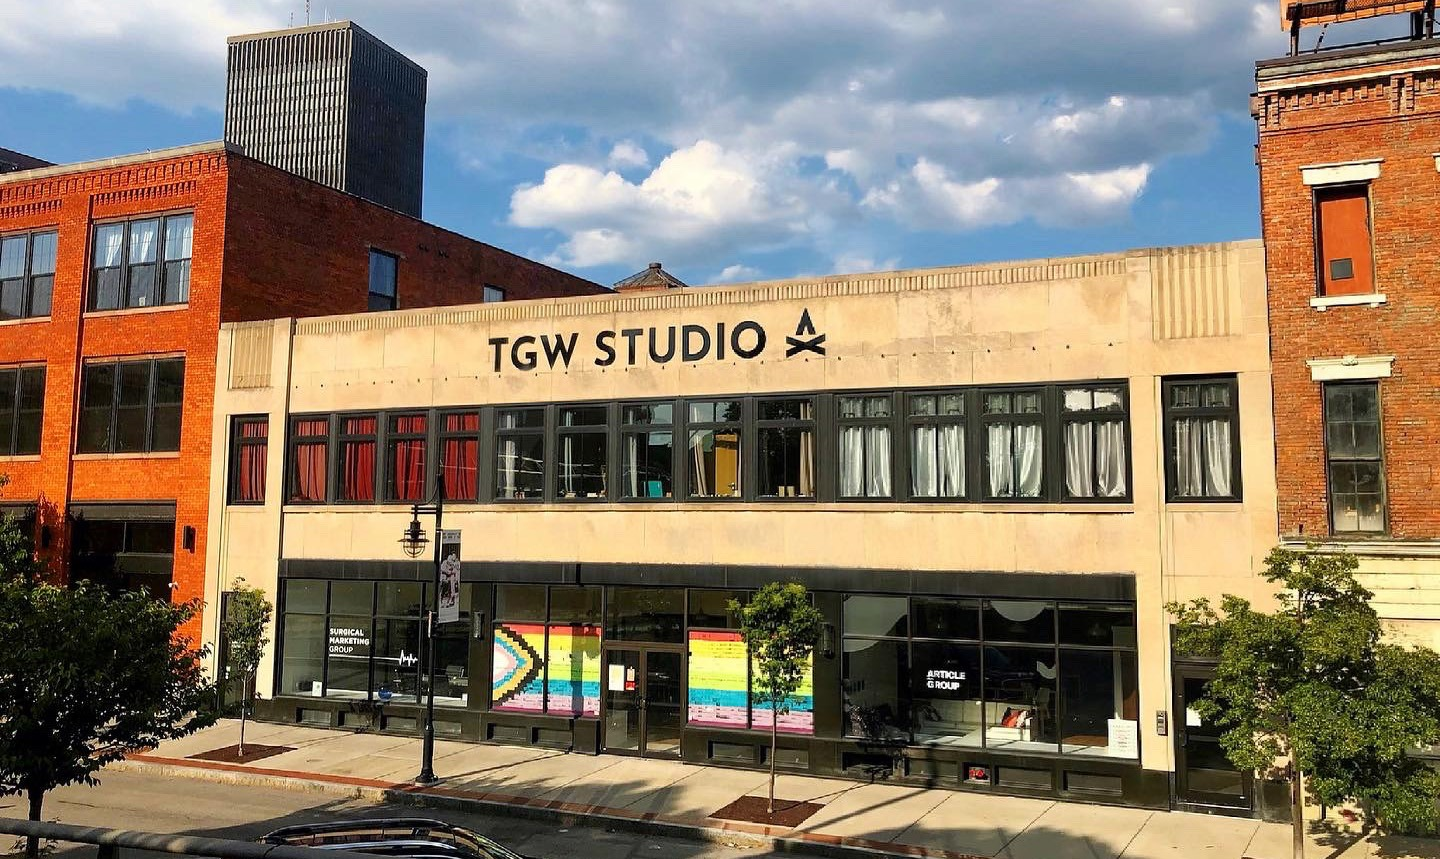 TGW Studio: its windows covered in post-it notes so they create the Inclusive Pride flag